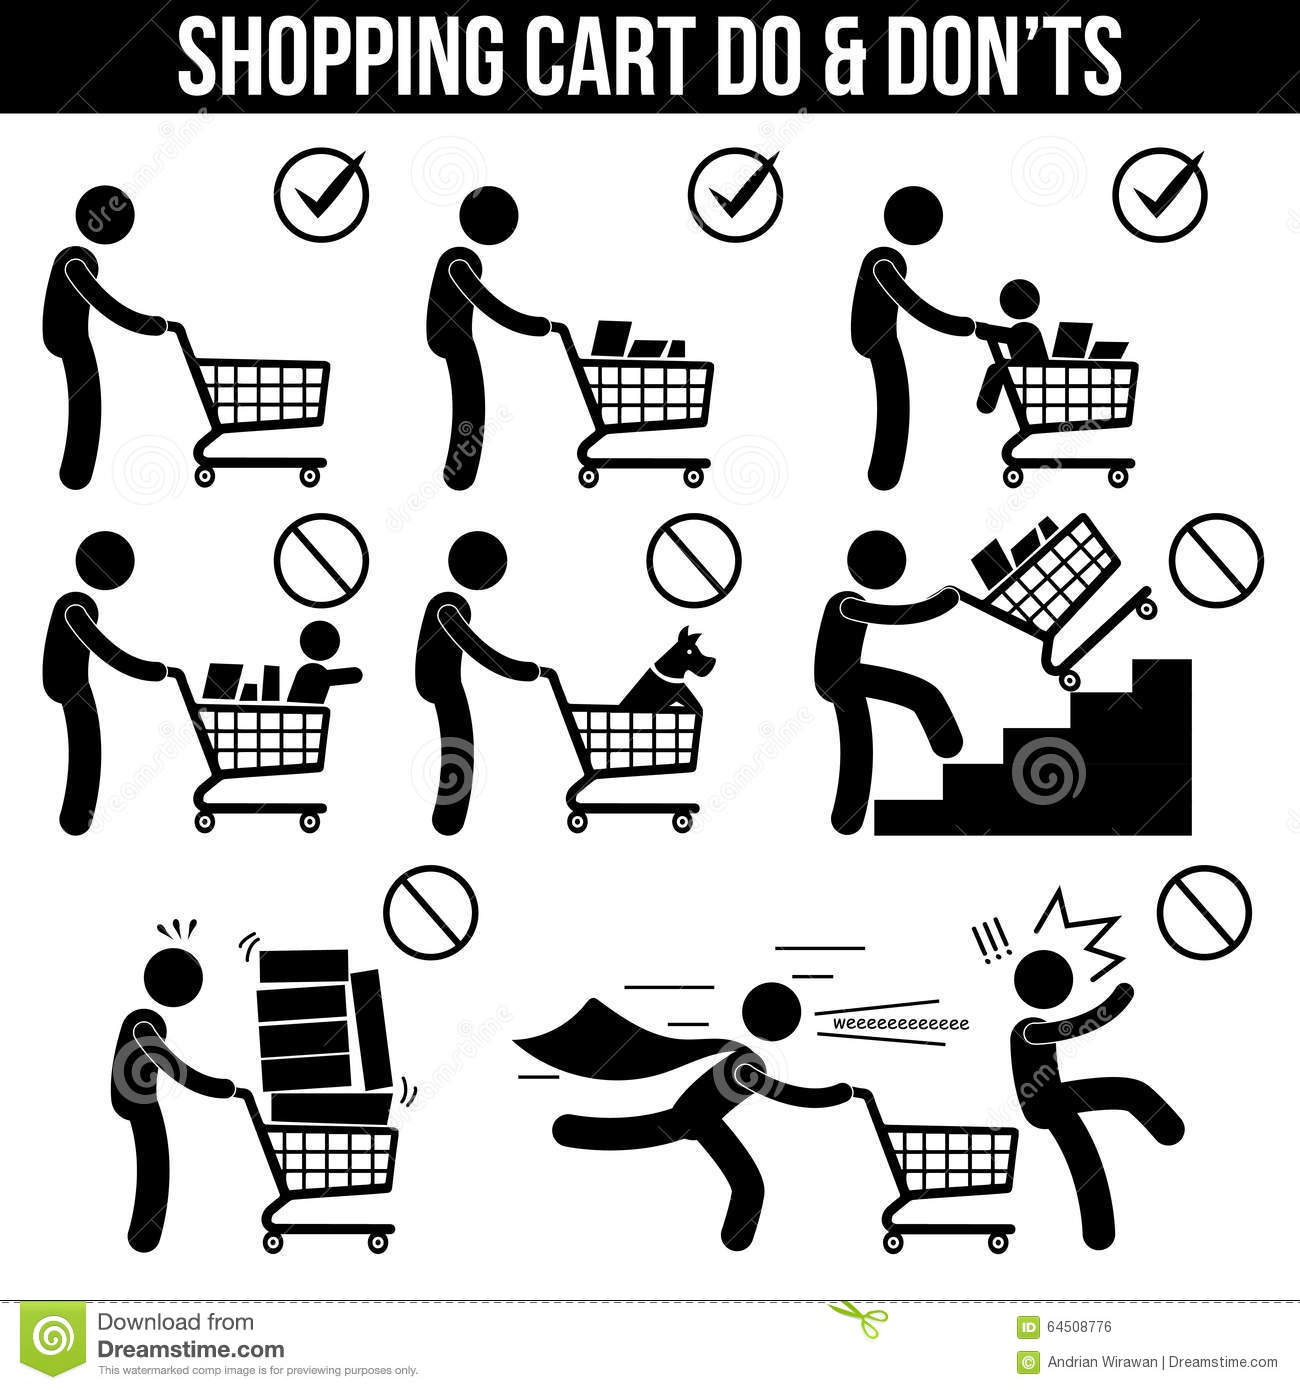 Royalty Free Stock Image Shopping Cart Trolley Dos And